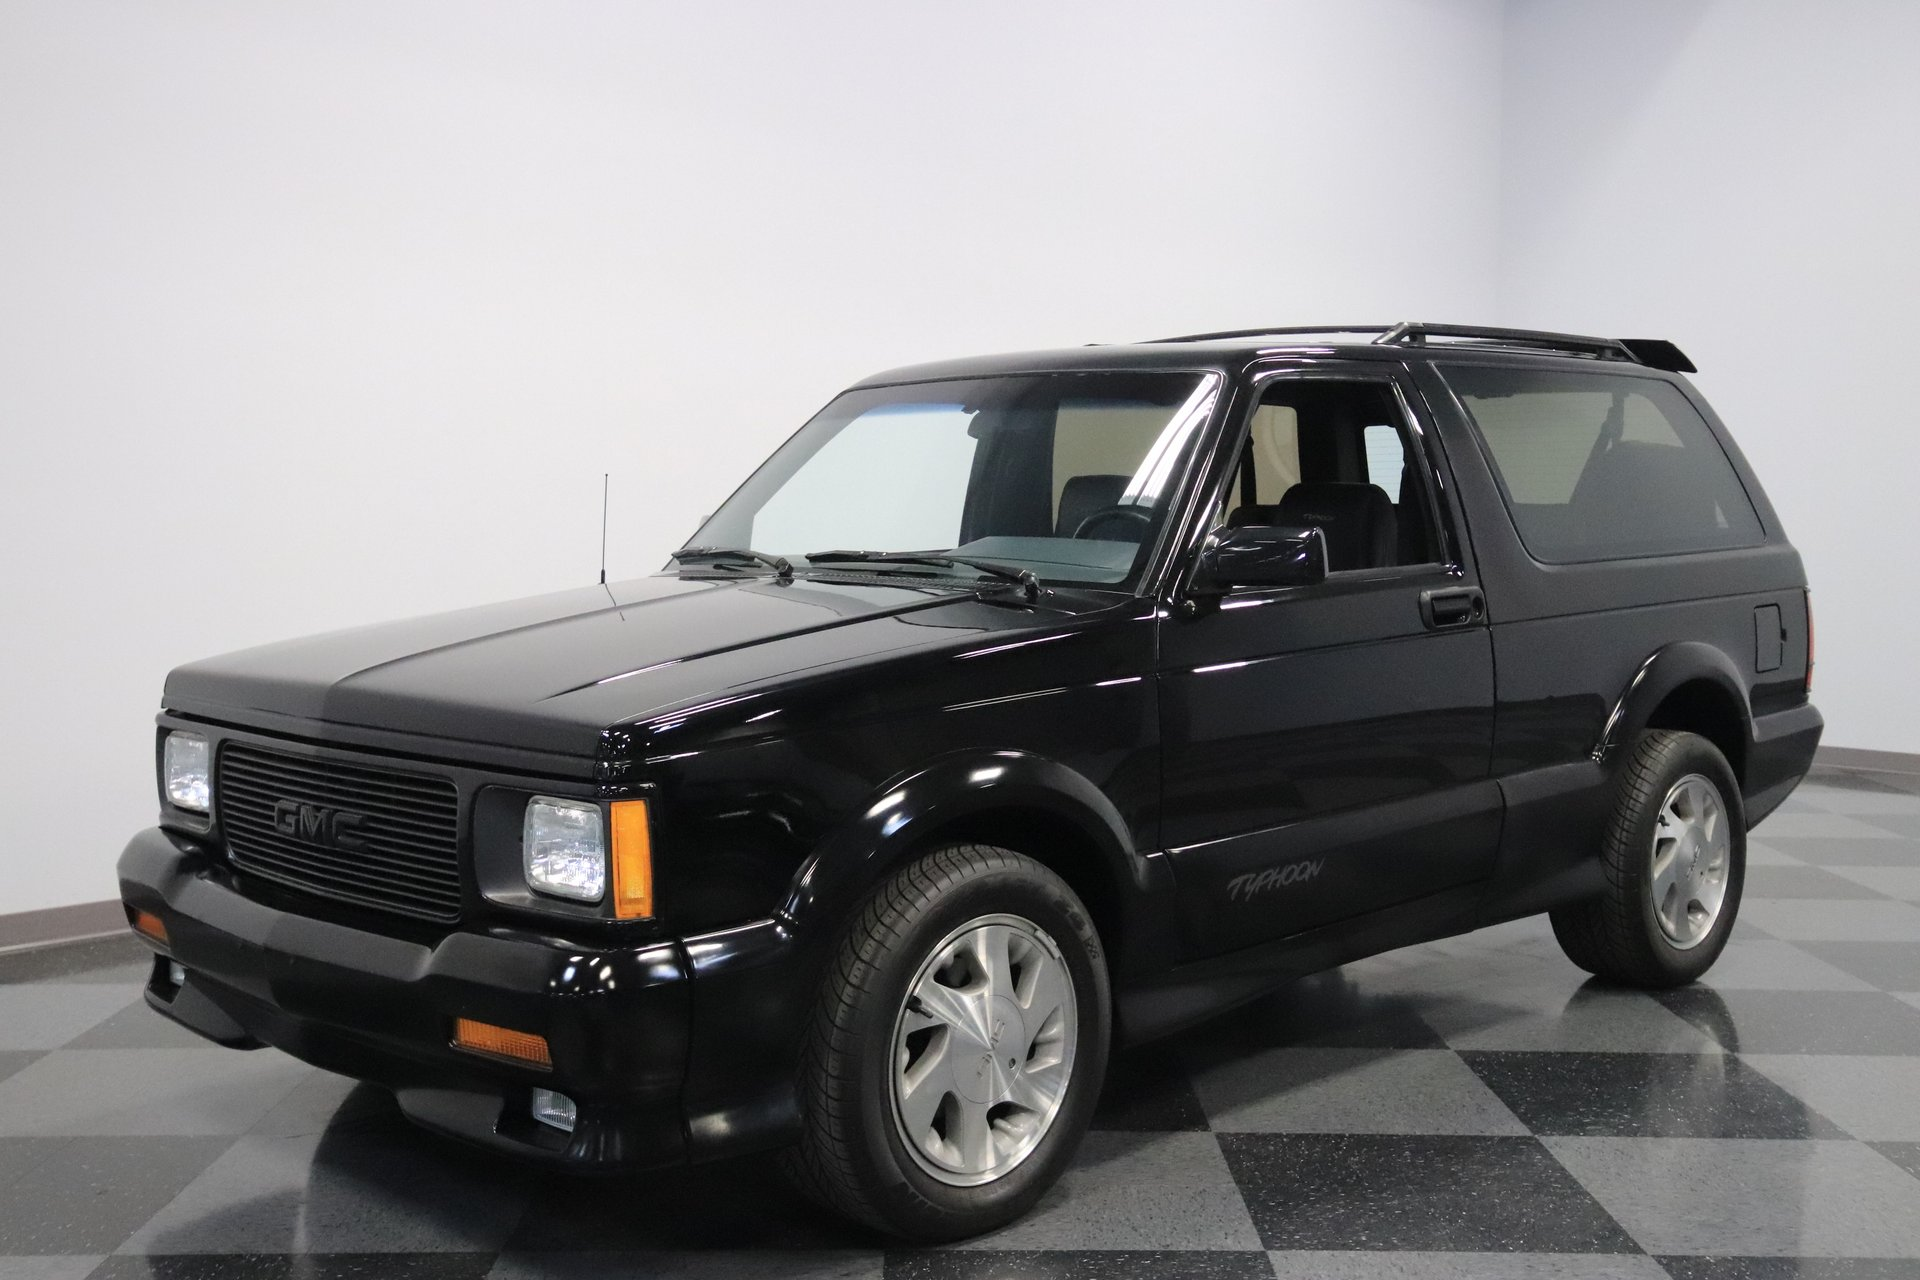 1992 Gmc Typhoon Classic Cars For Sale Streetside Classics The Nation S 1 Consignment Dealer